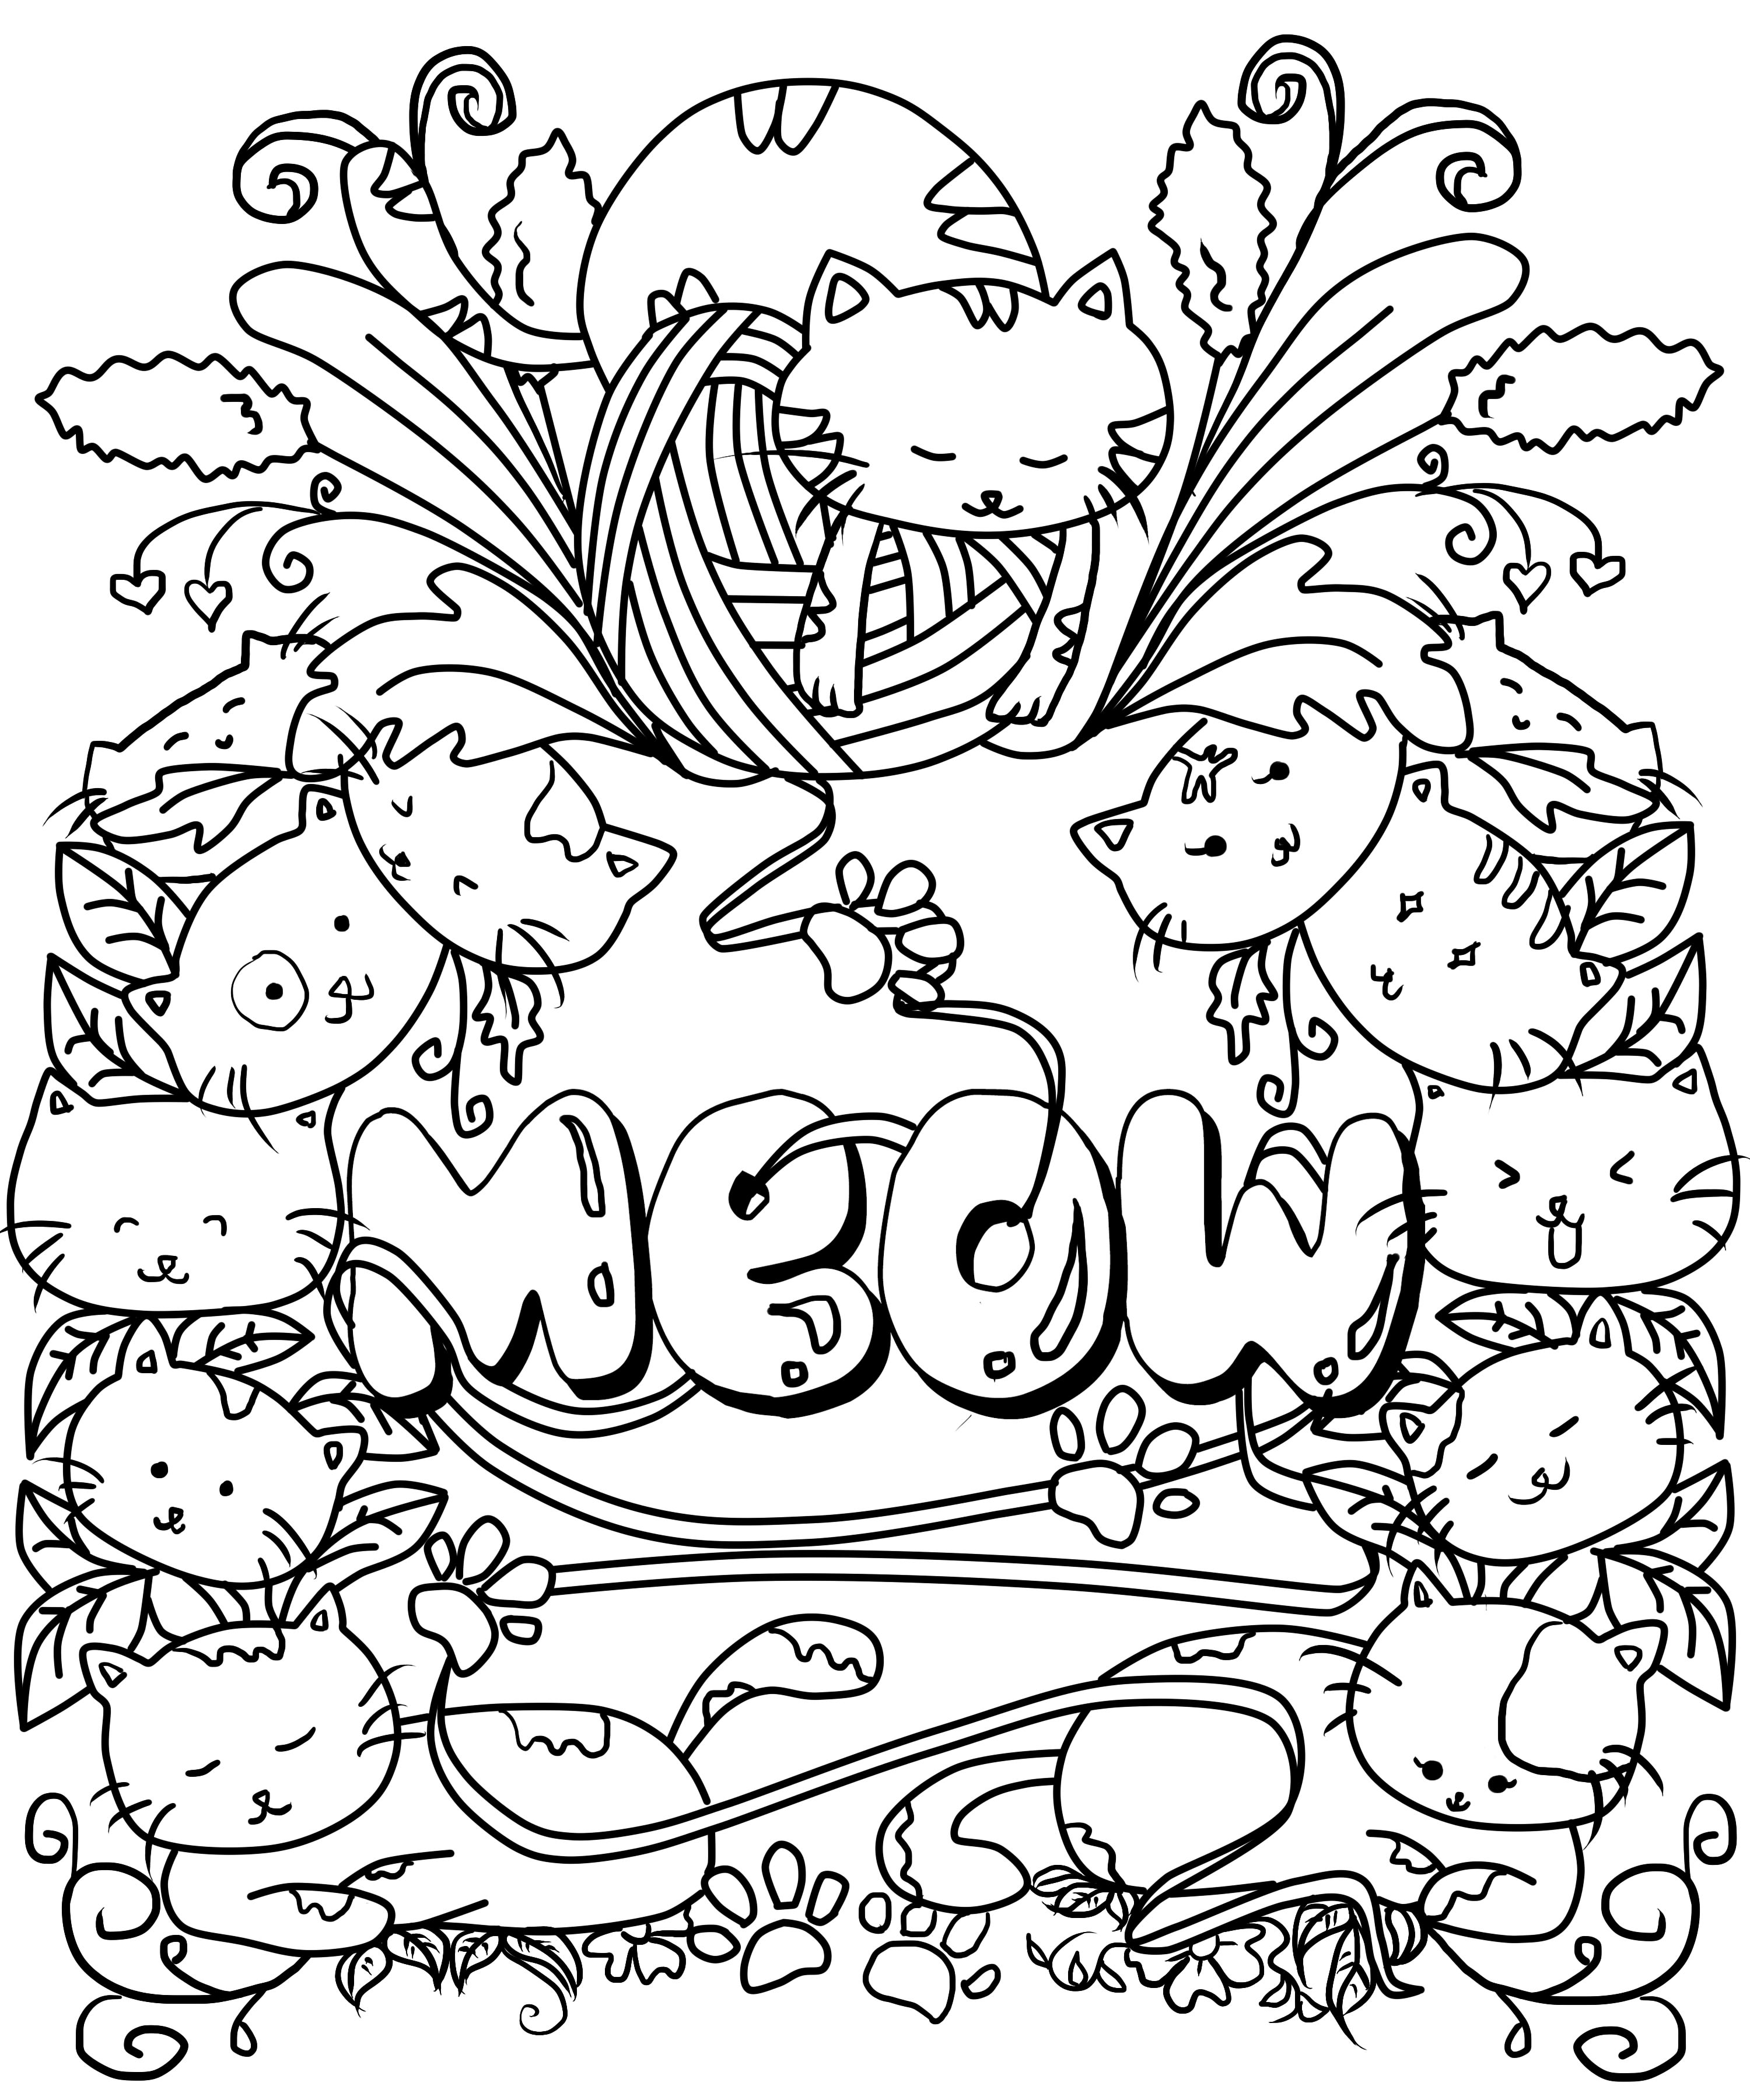 - Draw Coloring Book Designs By Ninjacat_28